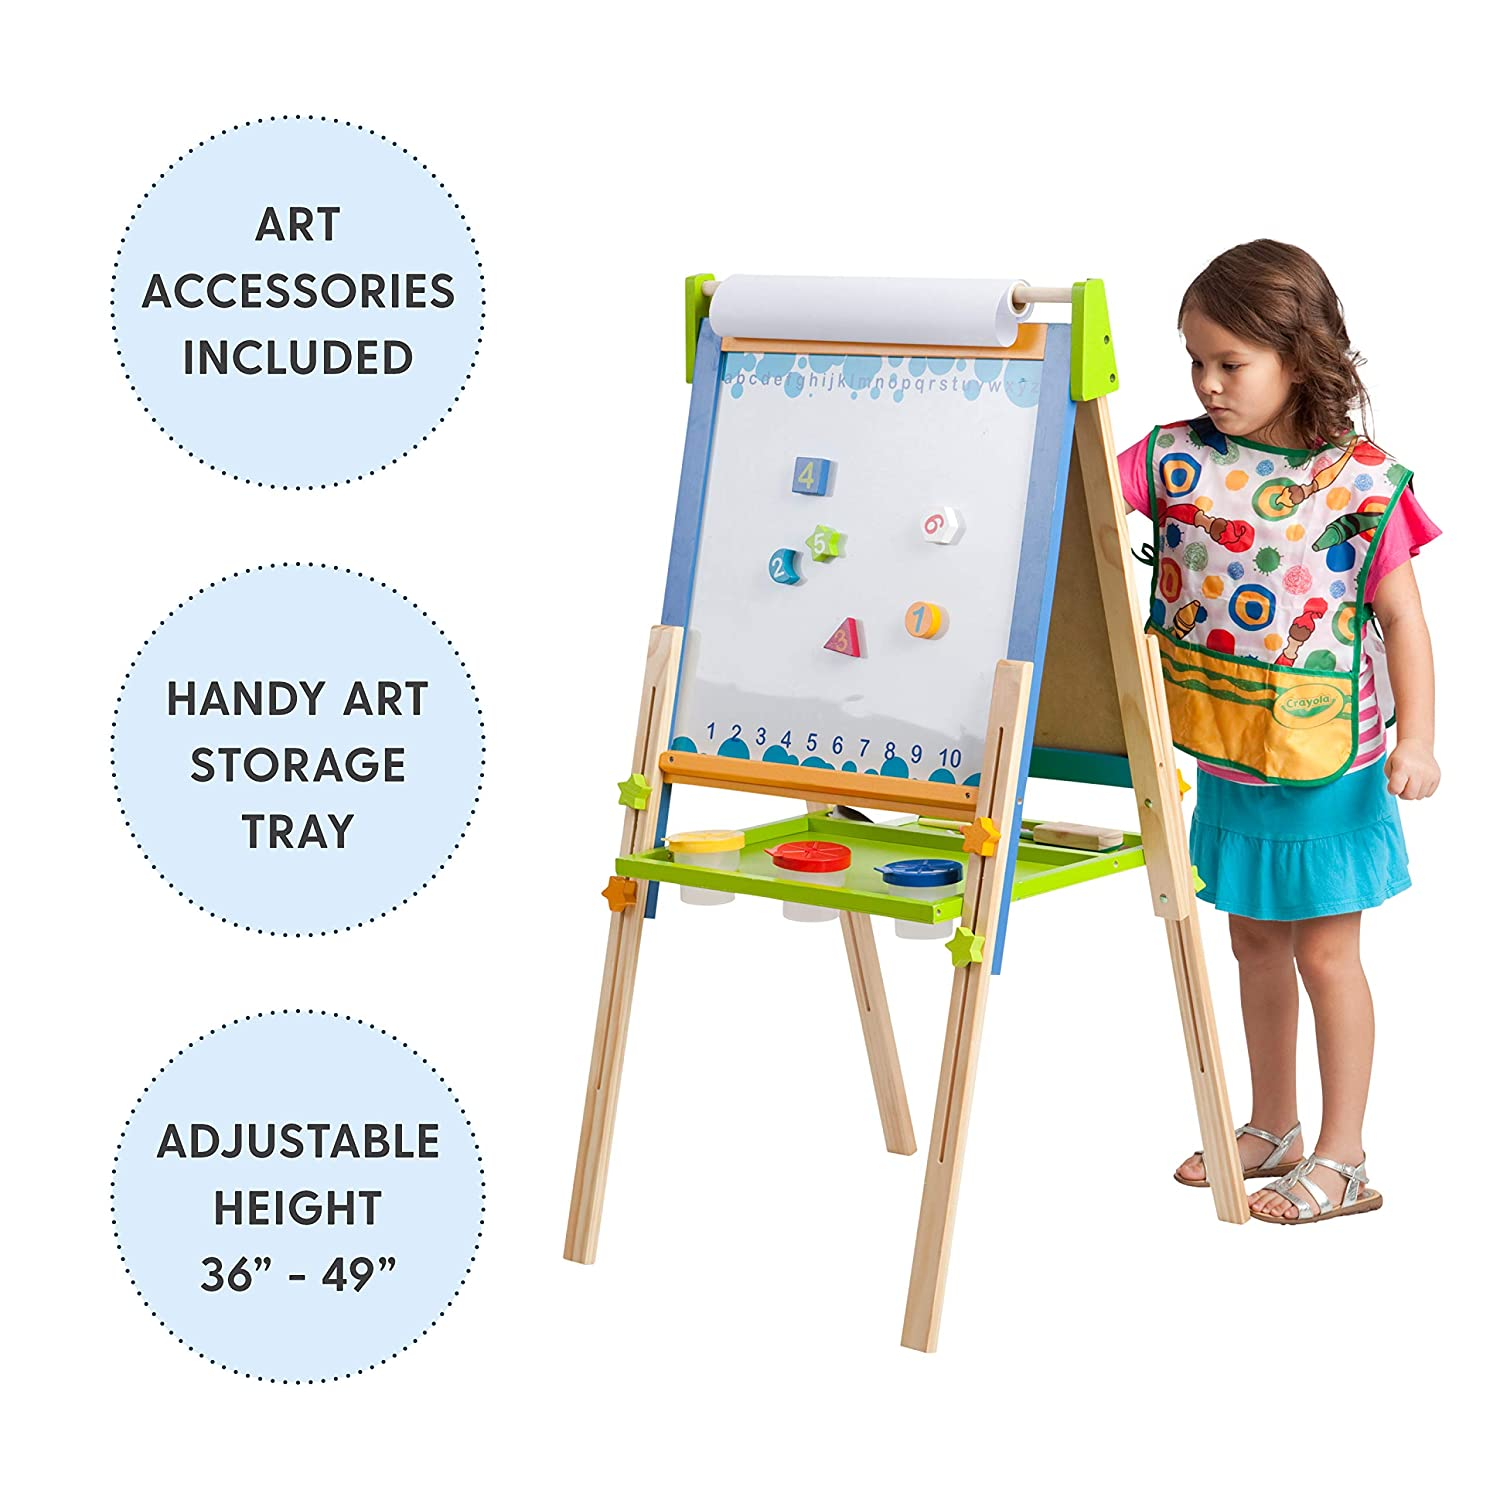 3-in-1 Premium Standing Adjustable Art Easel with Accessories for Kids Play Time